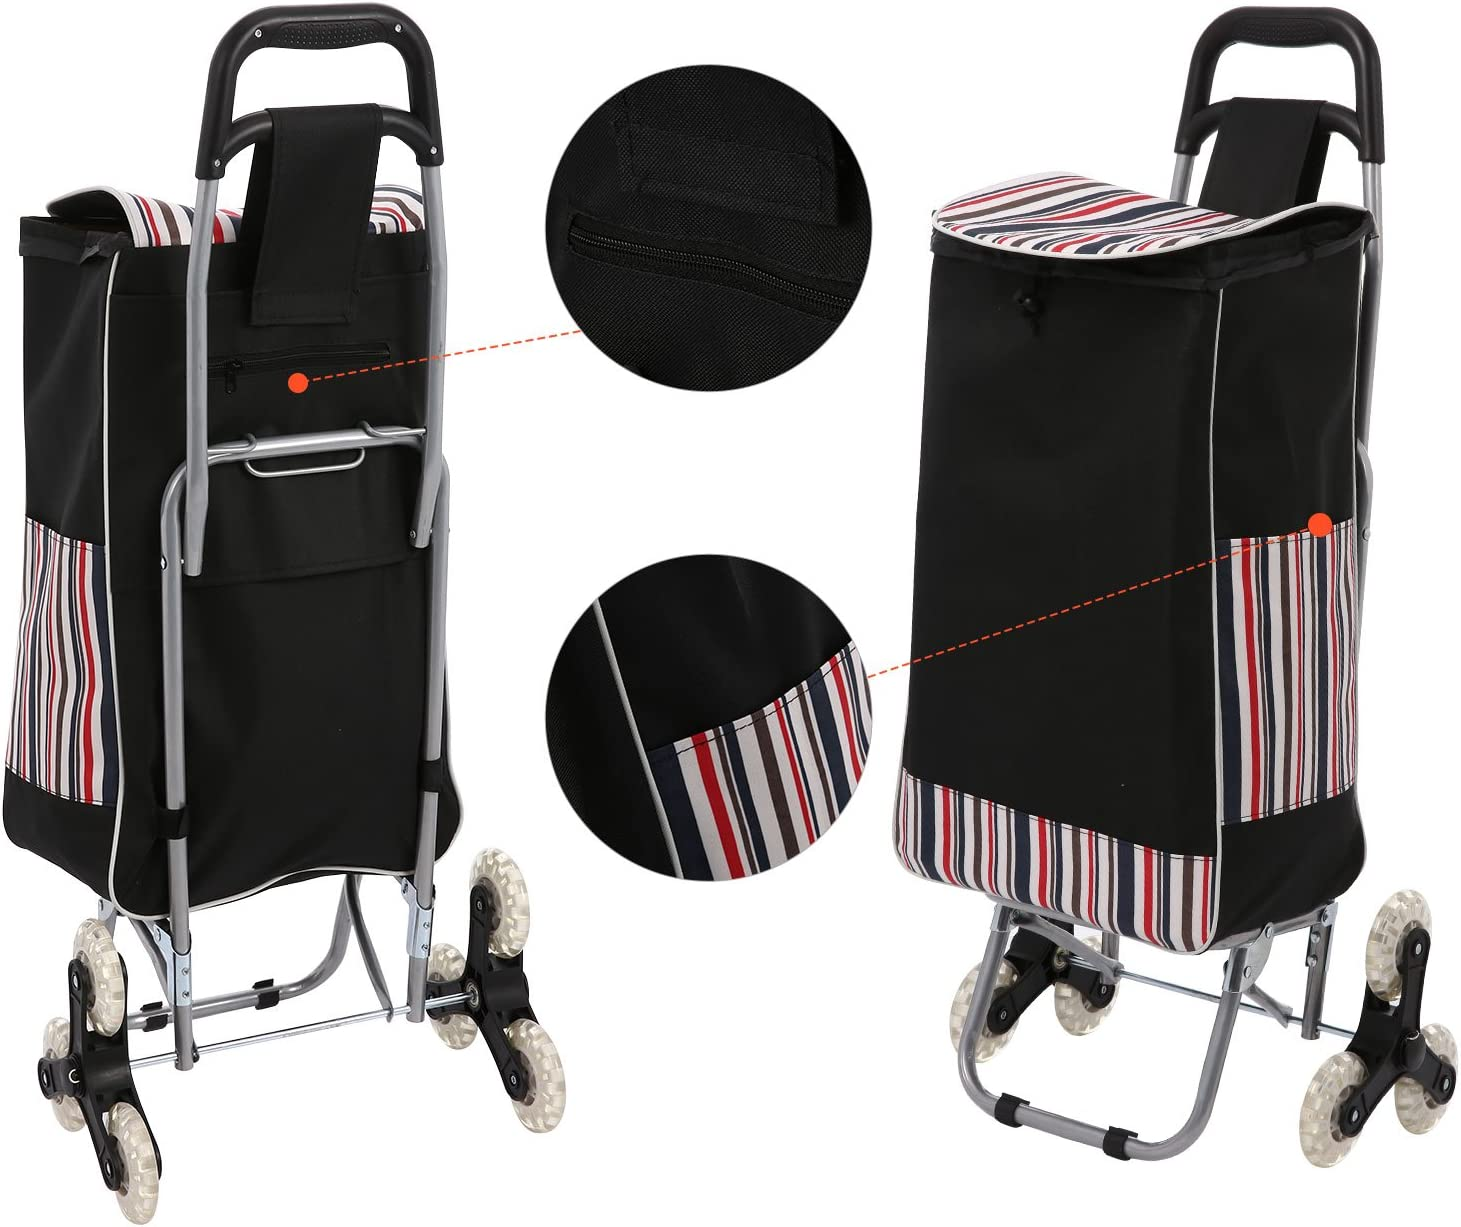 Folding Shopping Cart, Grocery Stair Climbing Trolley Cart Large-Capacity Laundry Utility Cart with Quiet Tri-Wheels Removable Waterproof Bag Black